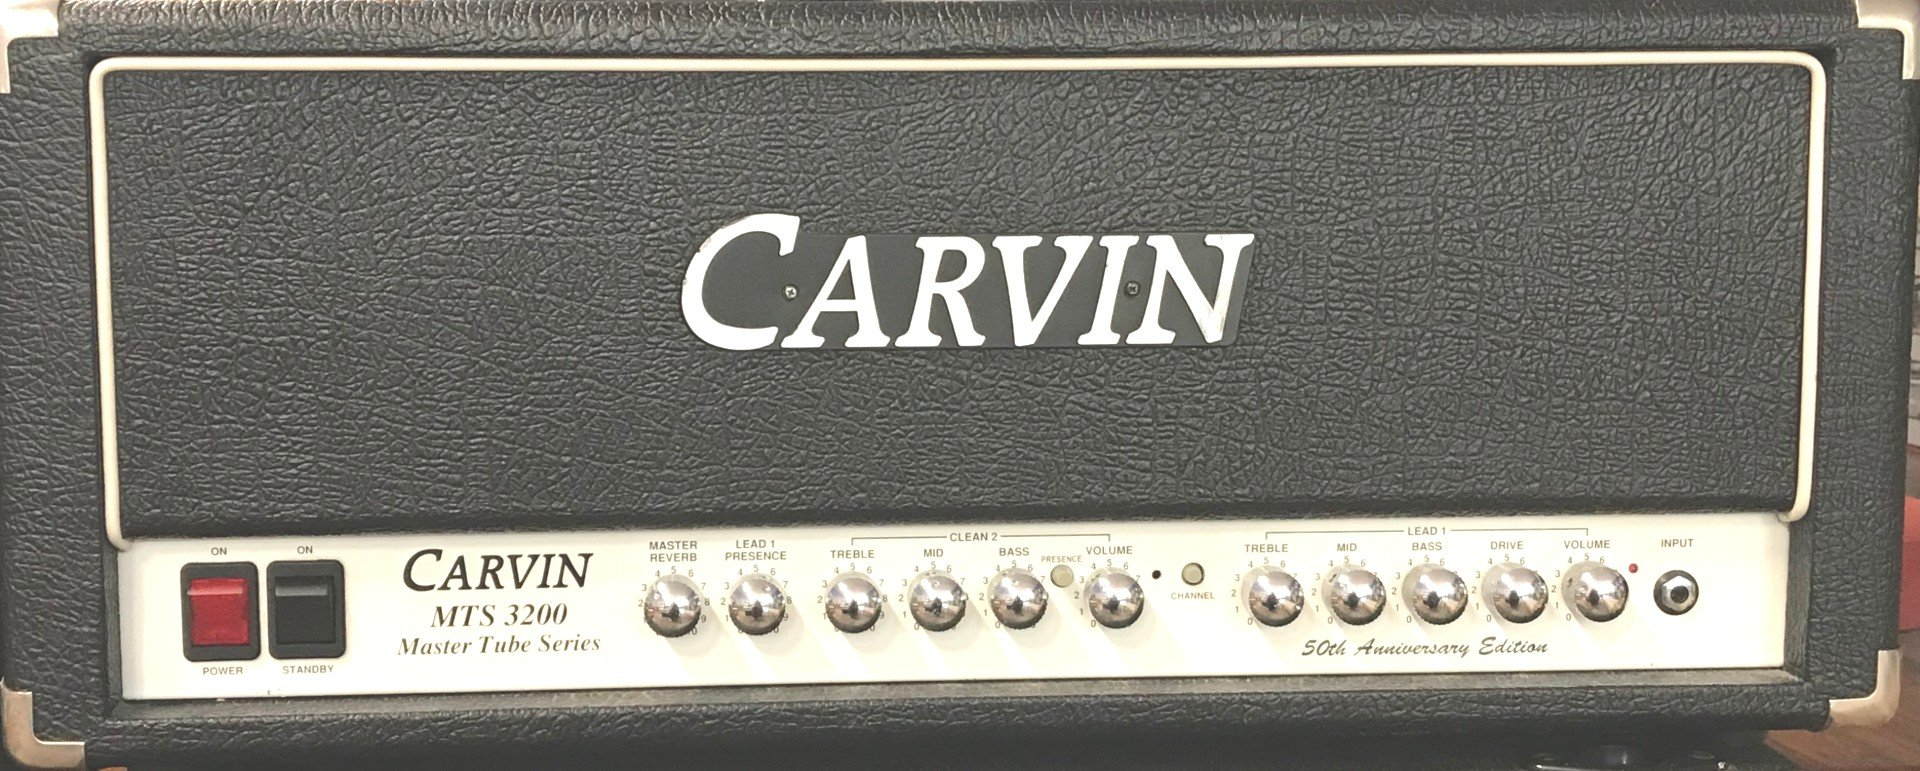 Used Carvin MGS3200